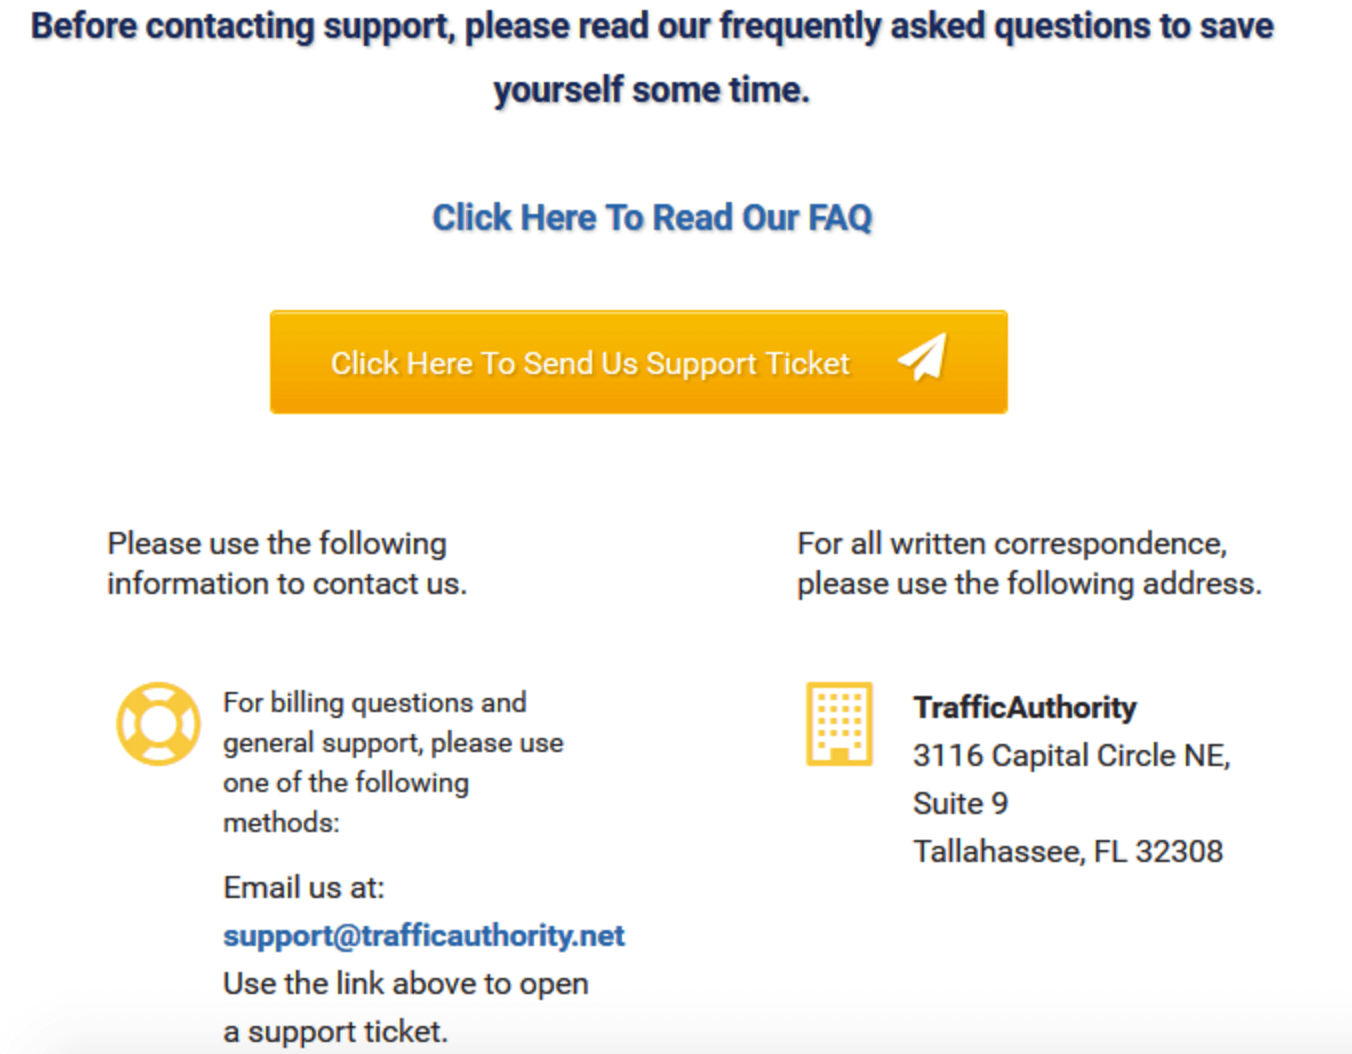 traffic-authority-support